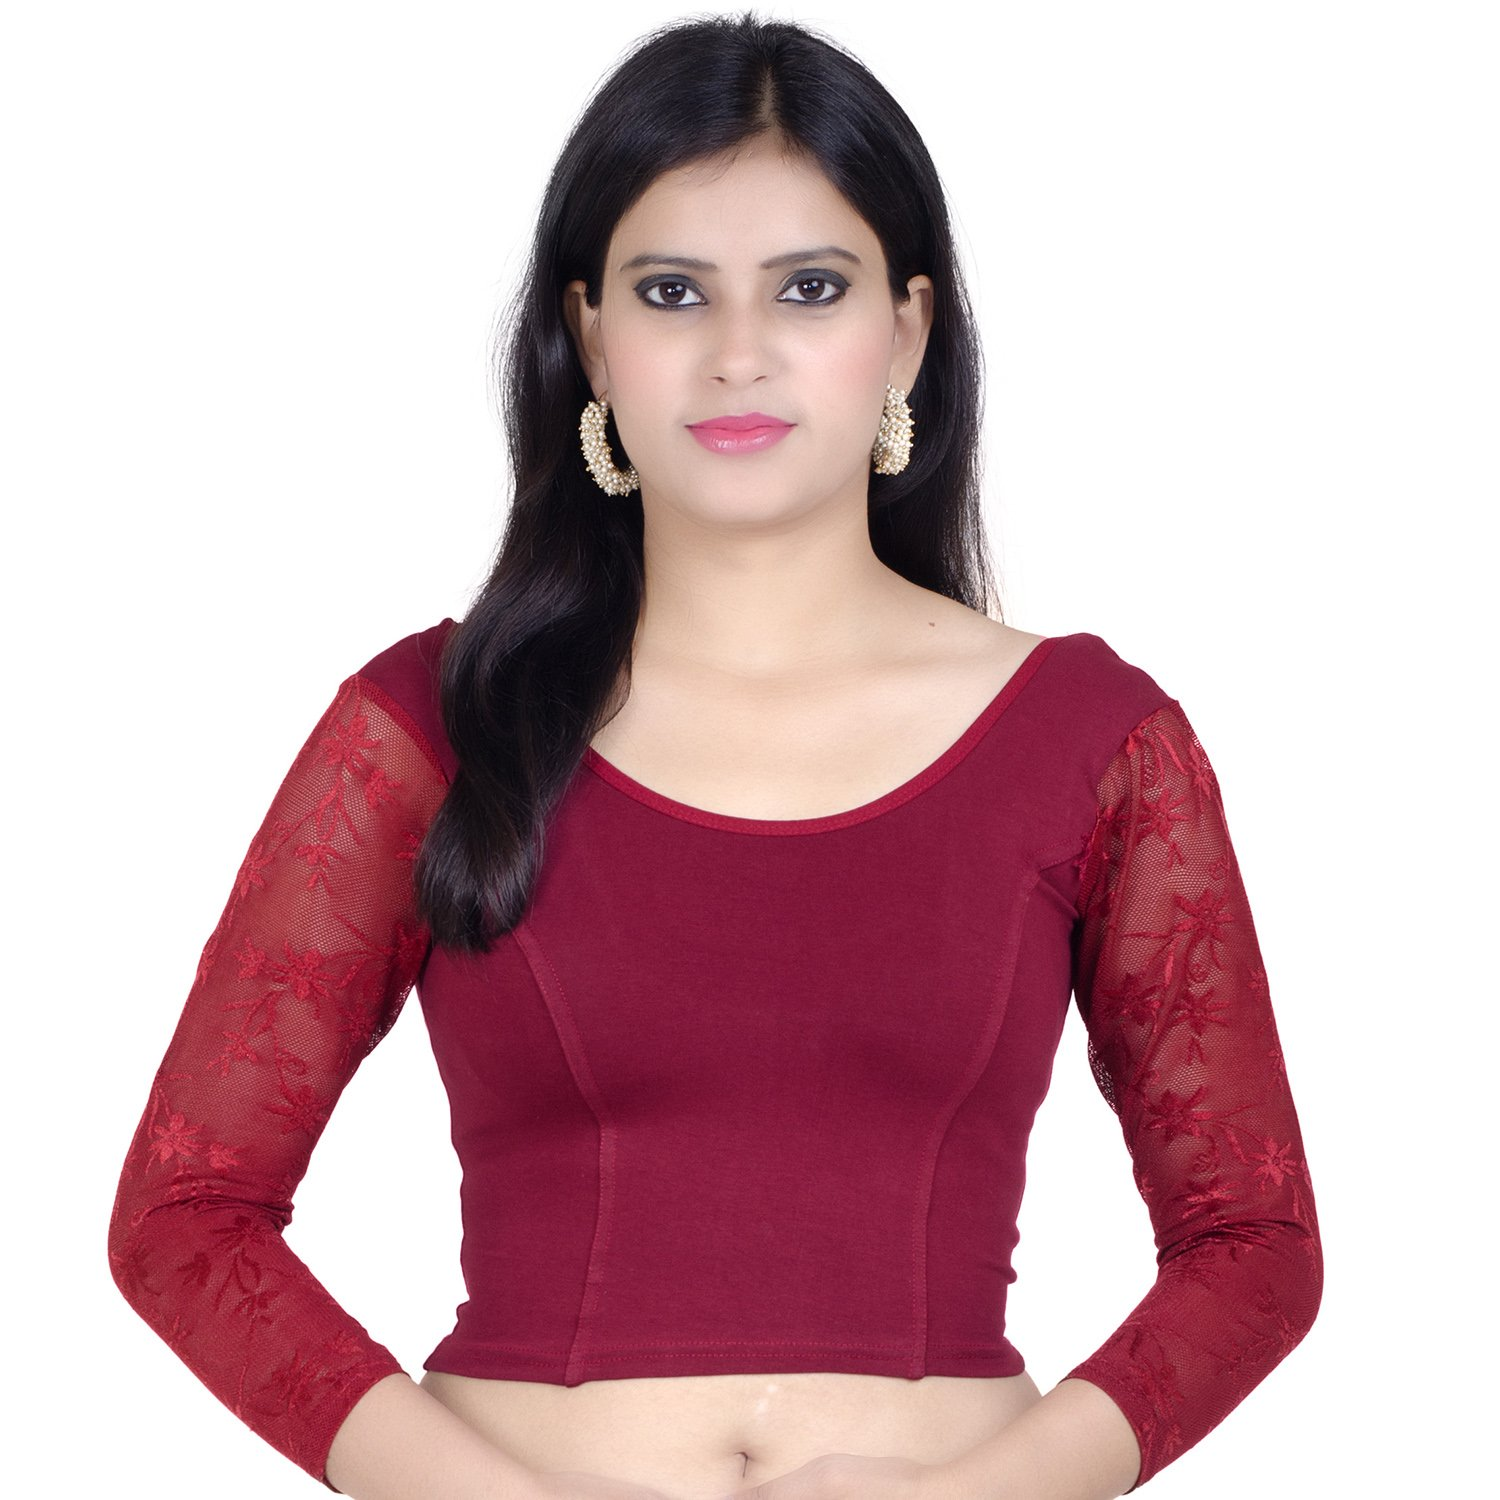 Chandrakala Womens Stretchable Readymade Maroon Saree Blouse Crop Top Choli (B101),Maroon-1,Free Size